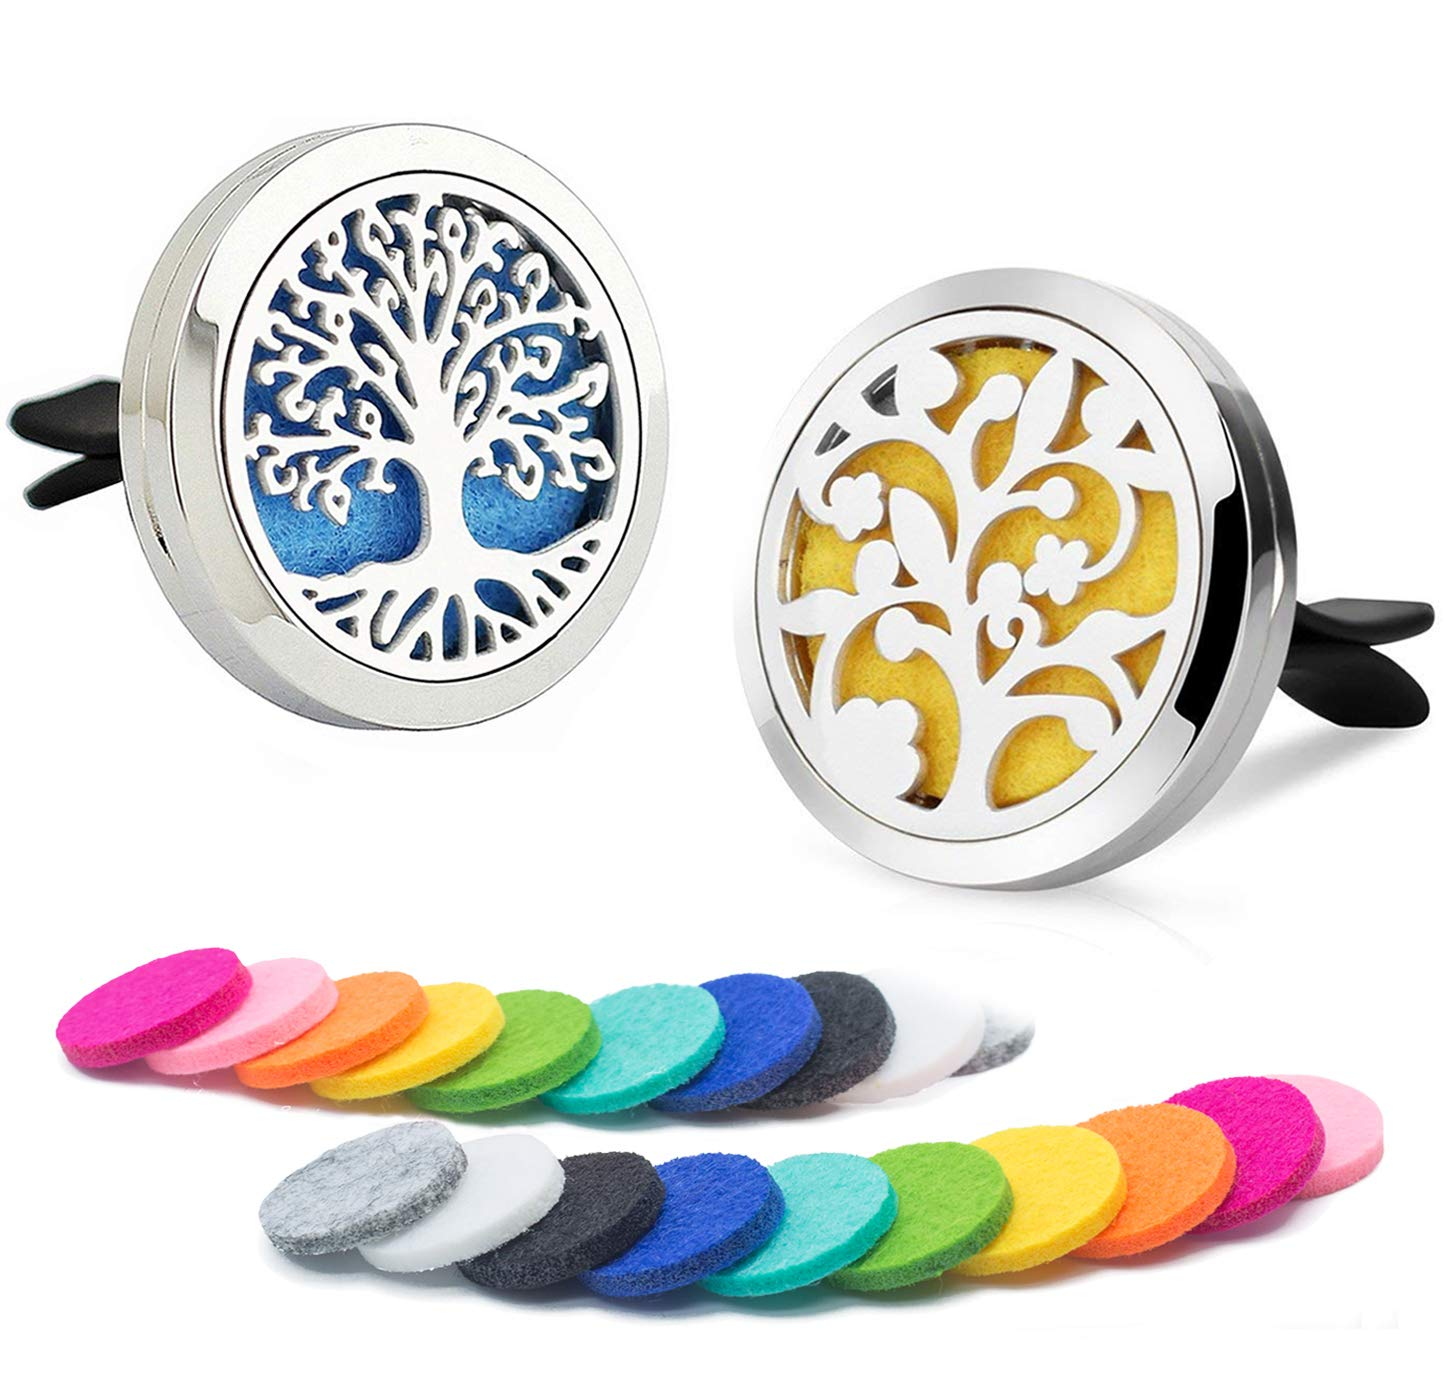 DAILUMI 2PCS Car Air Freshener Aromatherapy Essential Oil Diffuser Vent Clip - Flower & Tree of Life Good Luck Fragrance Locket with 20 Refill Pads Portable for Office Travel Home Vehicle